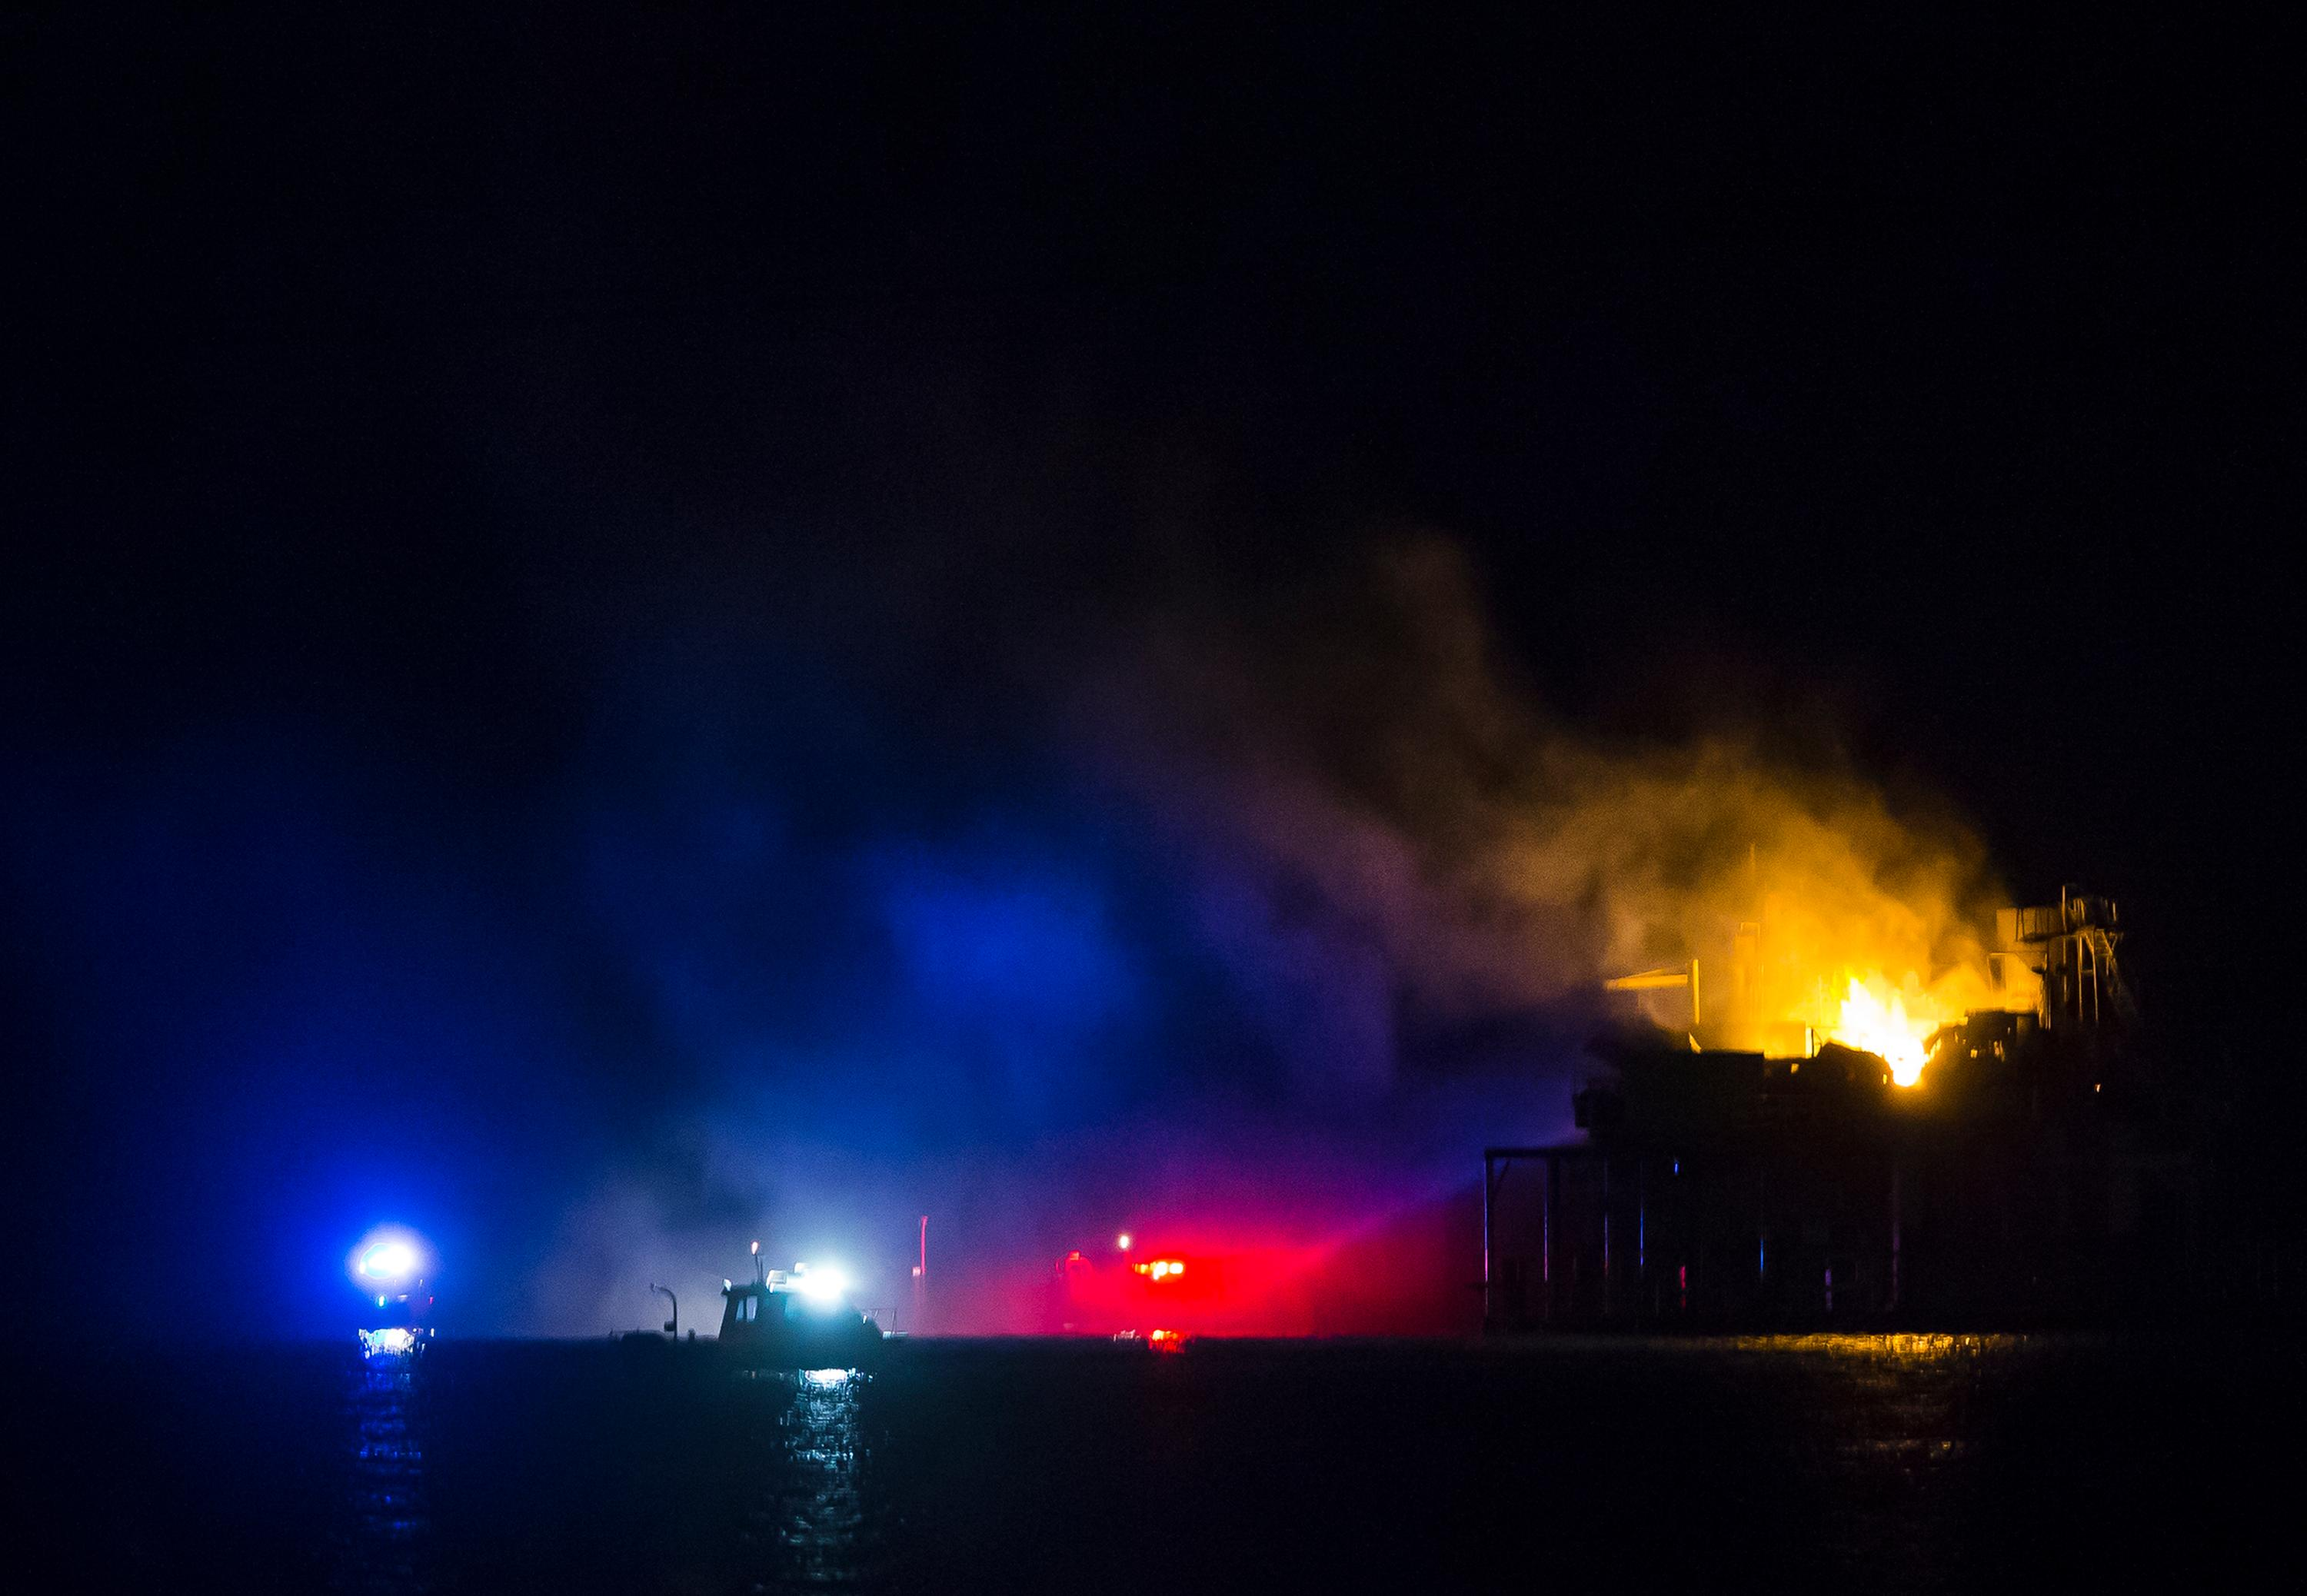 Rescue boats surround a rig in Lake Pontchartrain near New Orleans, La., after the rig exploded late on Sunday, Oct. 15, 2017. The explosion took place Sunday night in Lake Pontchartrain in St. Charles Parish, a Louisiana police department said. (Chris Granger/NOLA.com The Times-Picayune via AP)